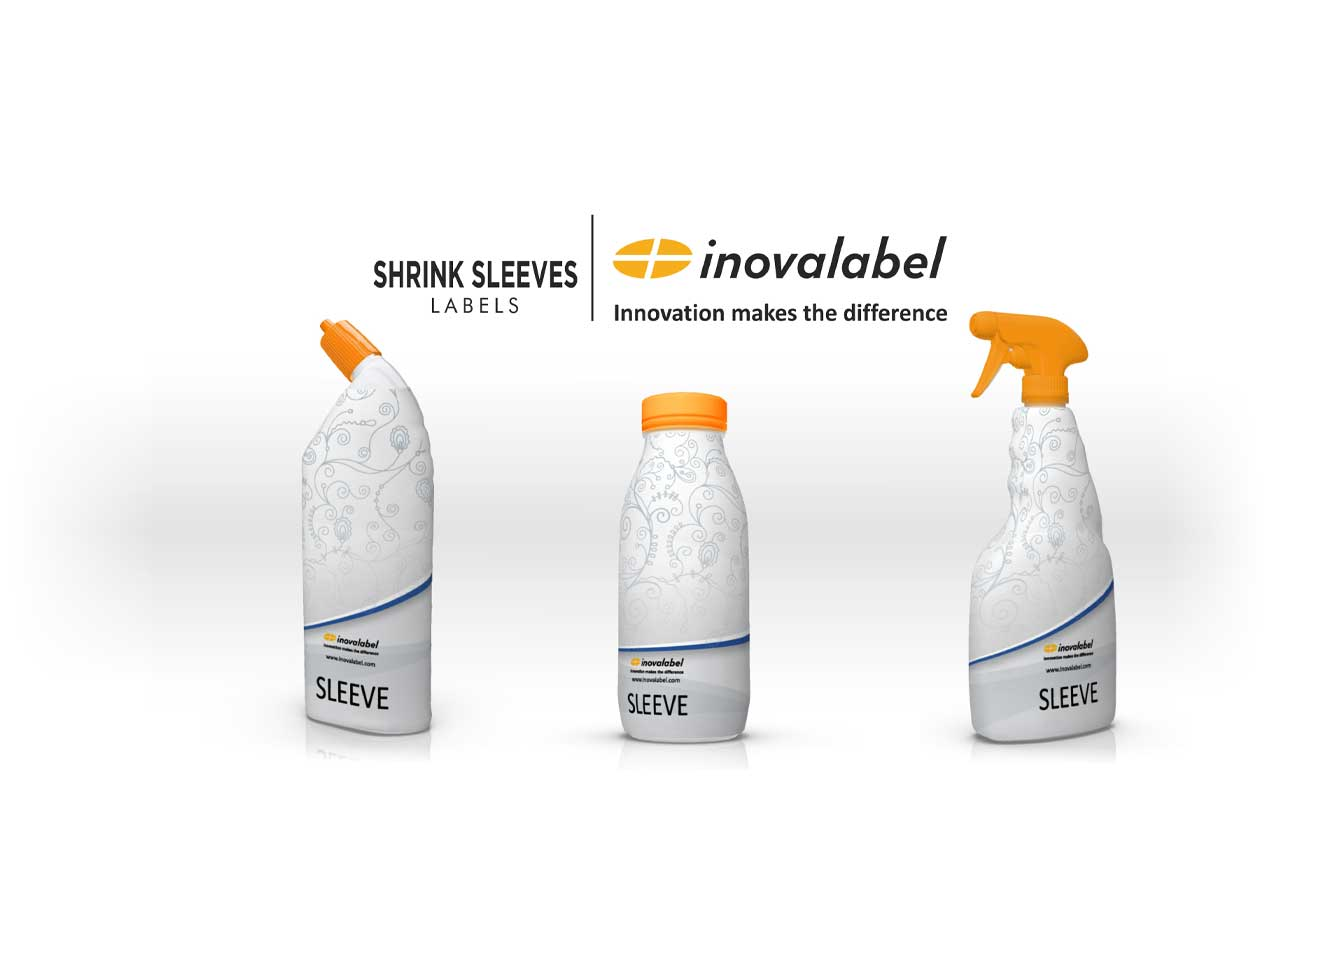 Inovalabel-Shrink-Sleeves